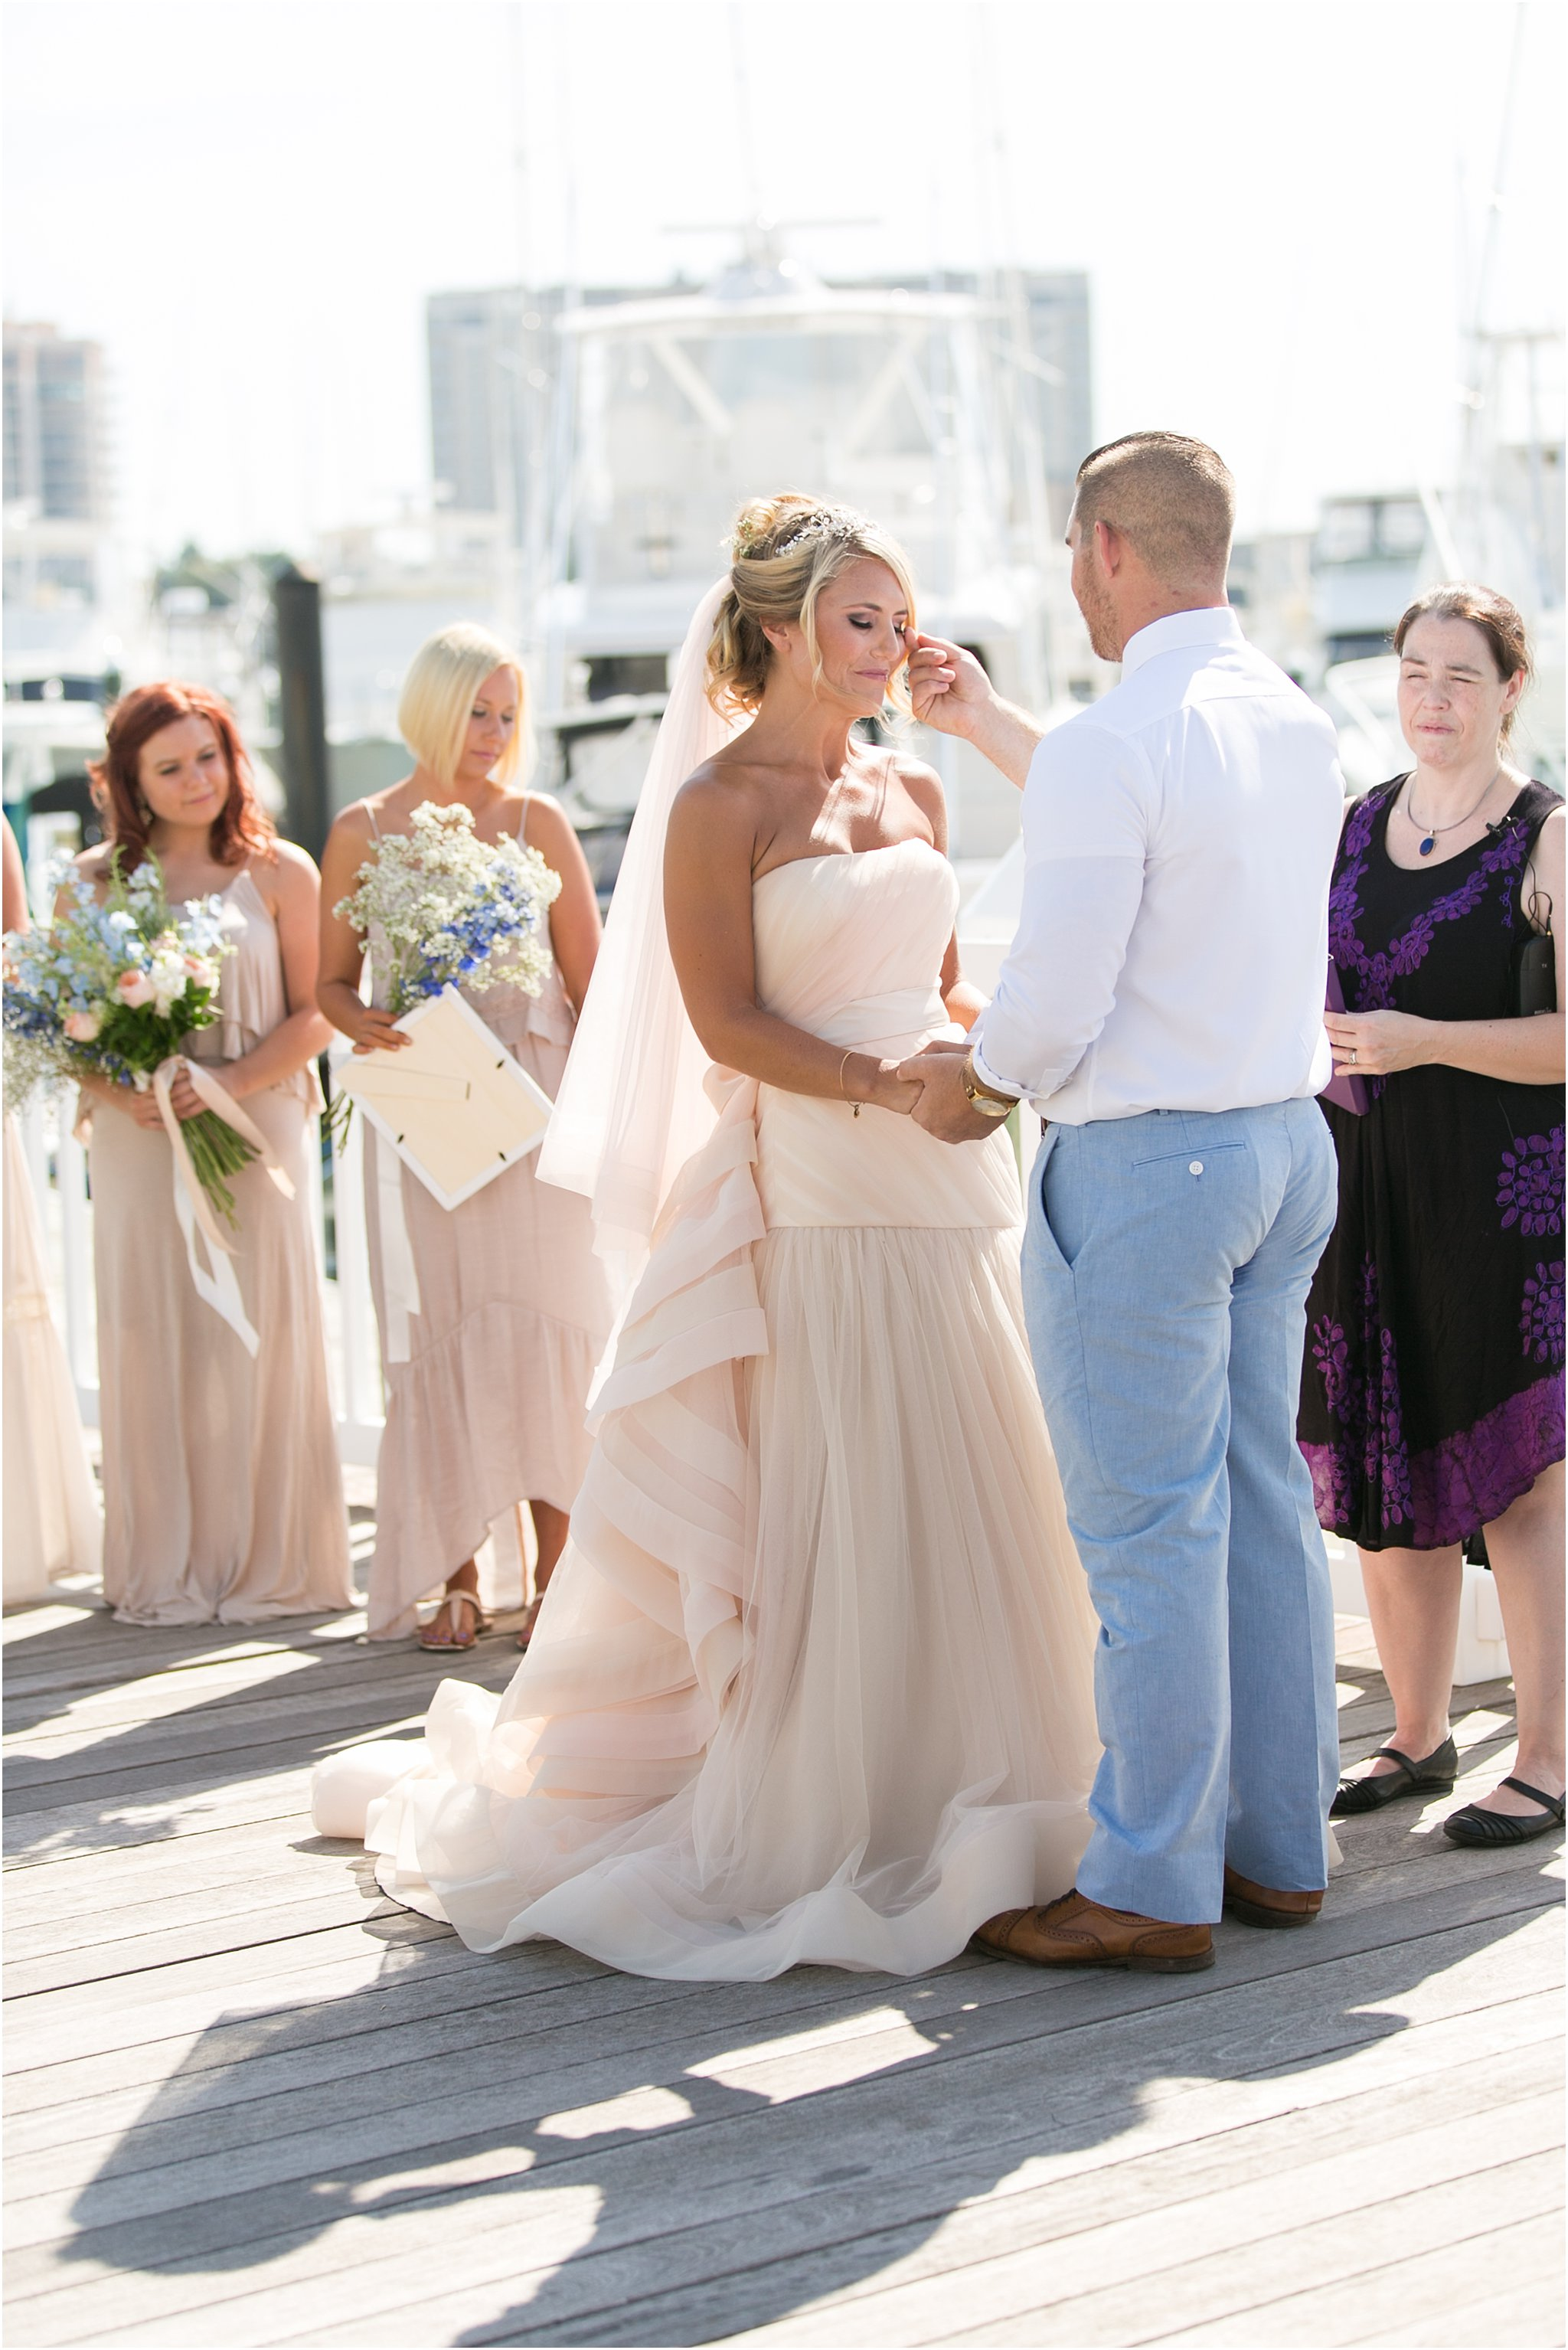 jessica_ryan_photography_wedding_photographs_must_haves_bride_top_wedding_photographs_virginia_wedding_photographer_2027